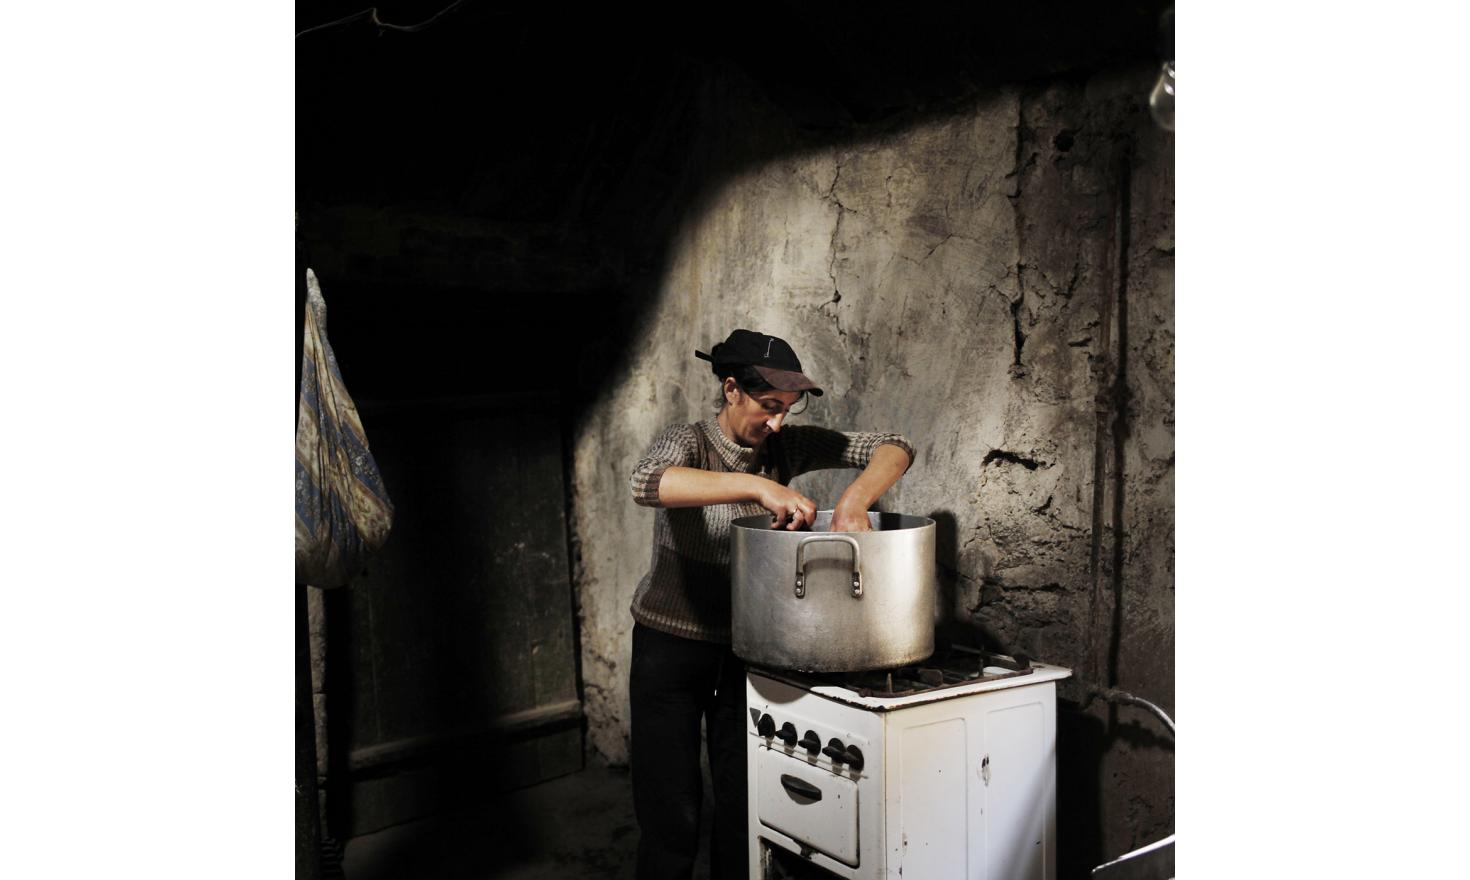 Anoush cook canned peppers. The cans are stored for the winter. The village's families are almost self-subsistent: fruits and vegetables from the garden, milk, butter and cheese from the cows, homemade lavash. However the work to obtain this is huge.